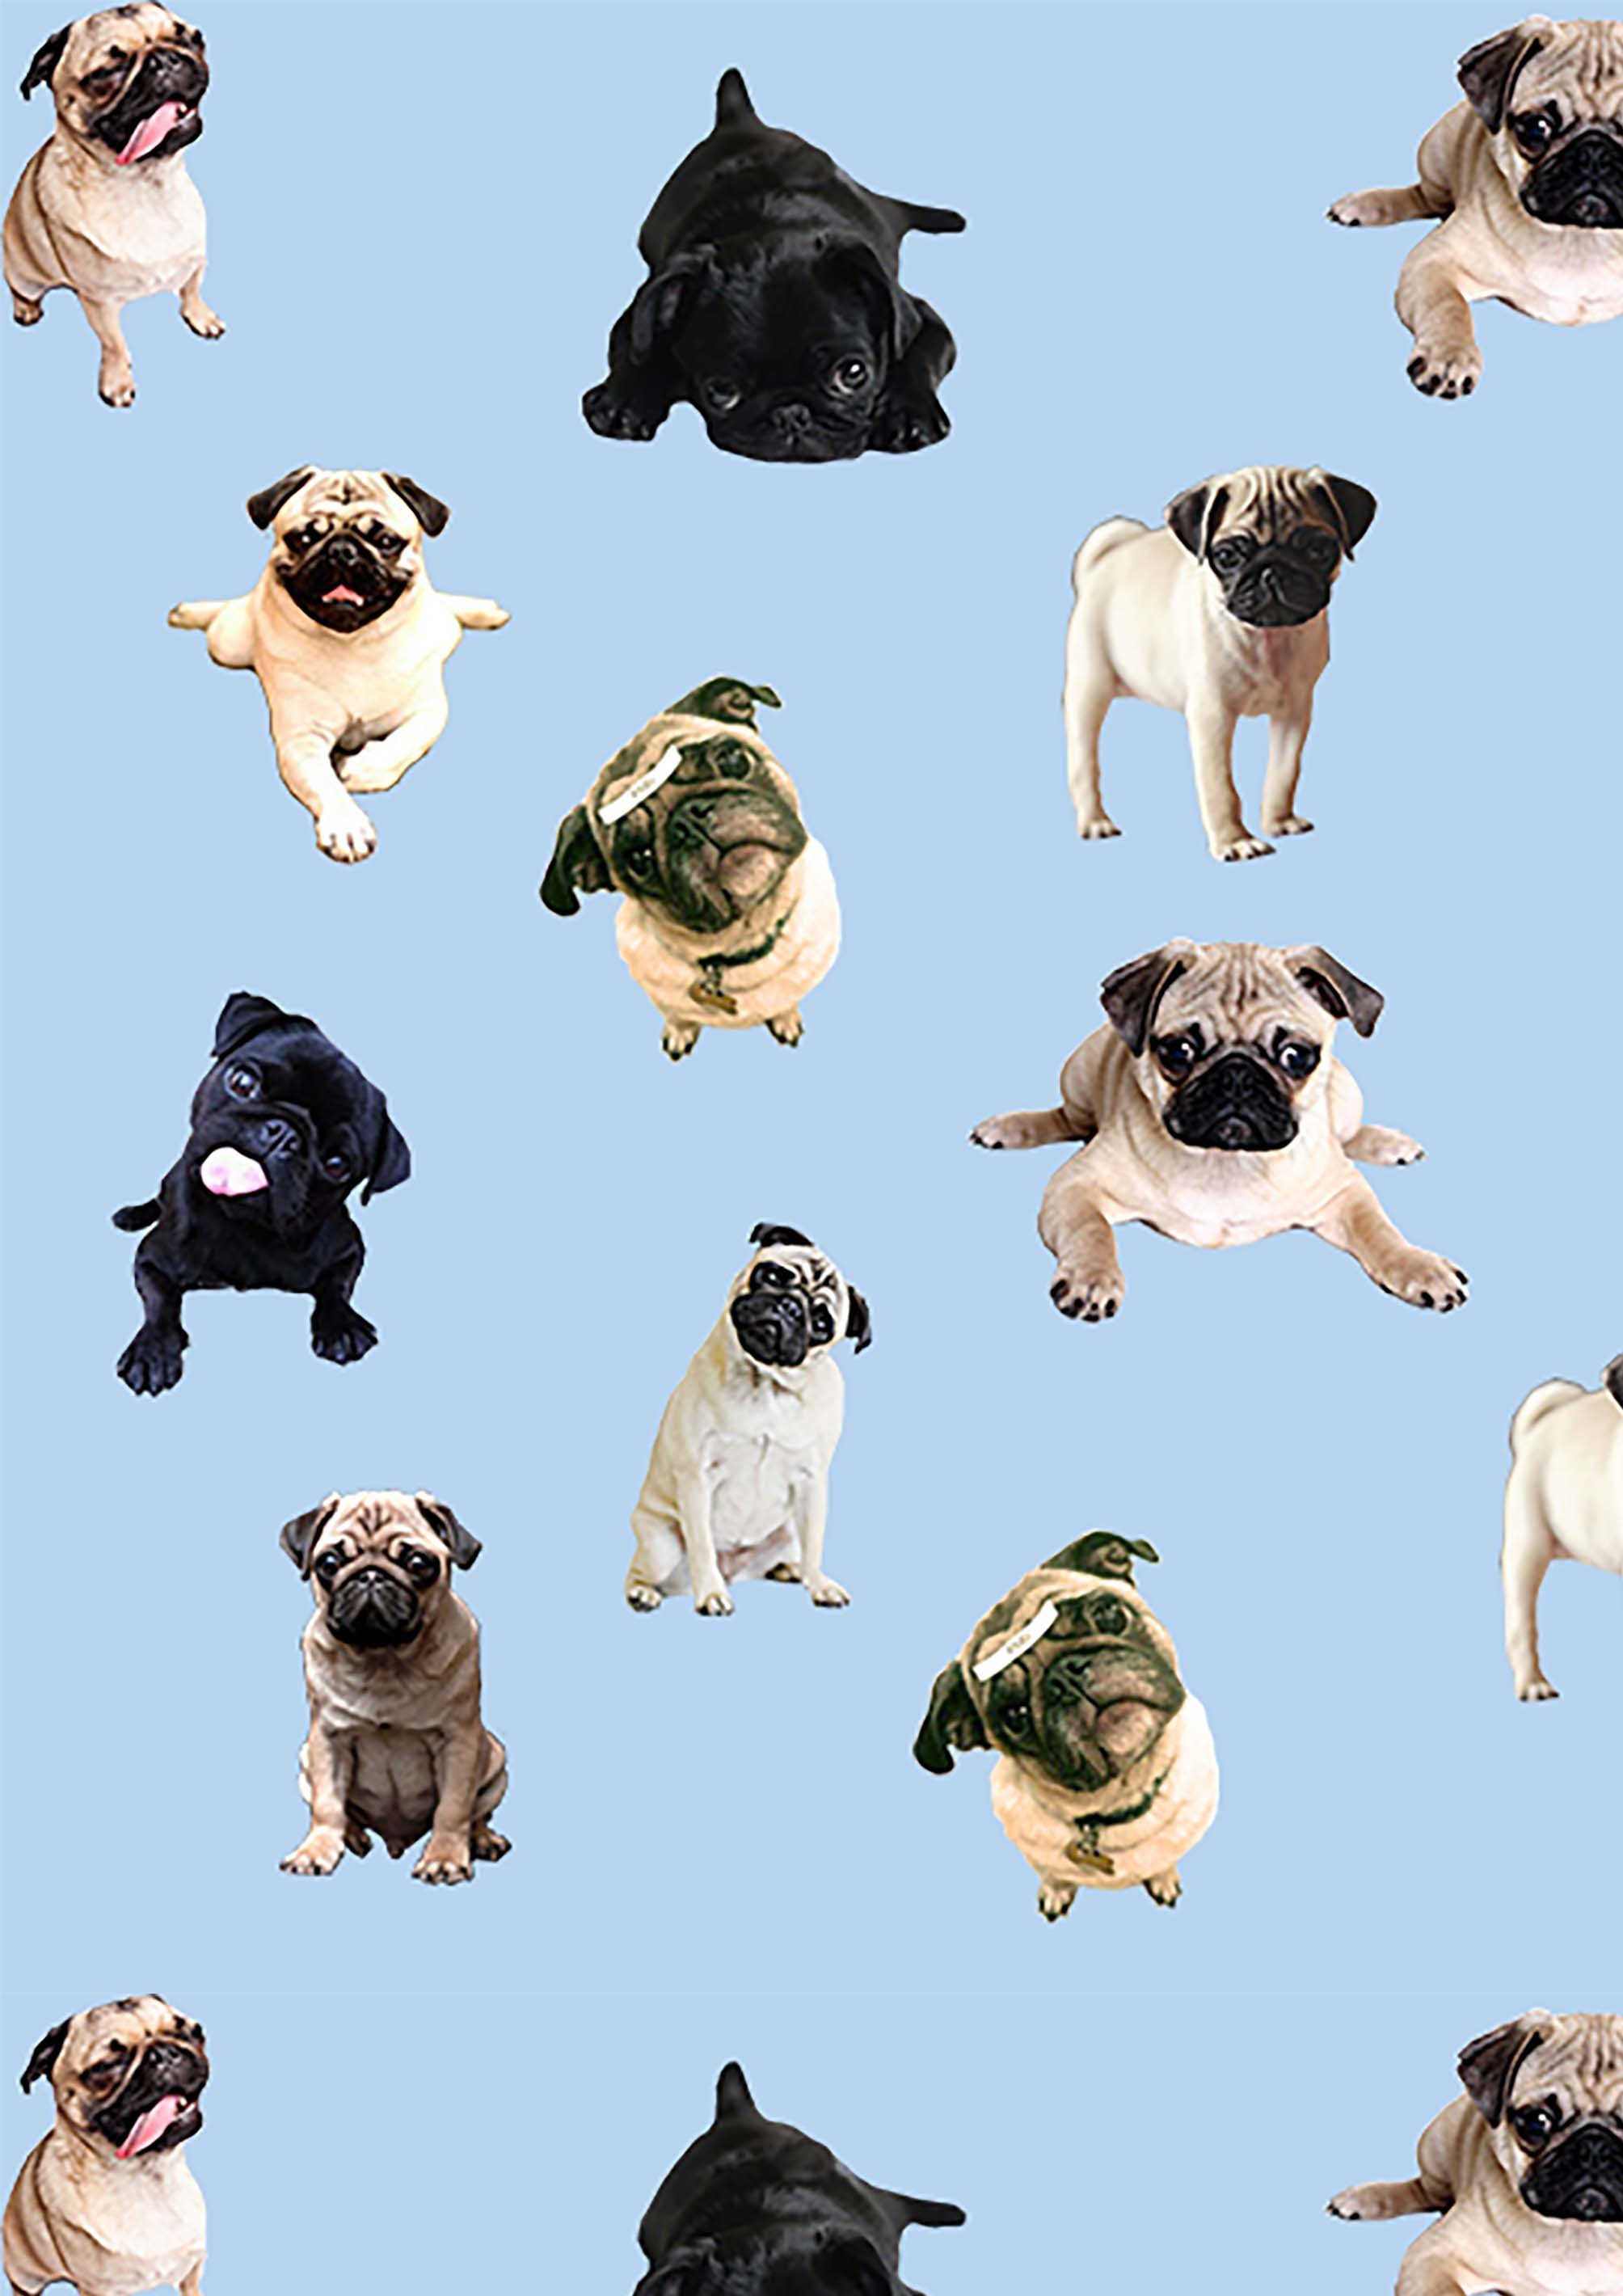 1080x1920 Cute Pugs Puppies IPhone 6 Wallpaper HD